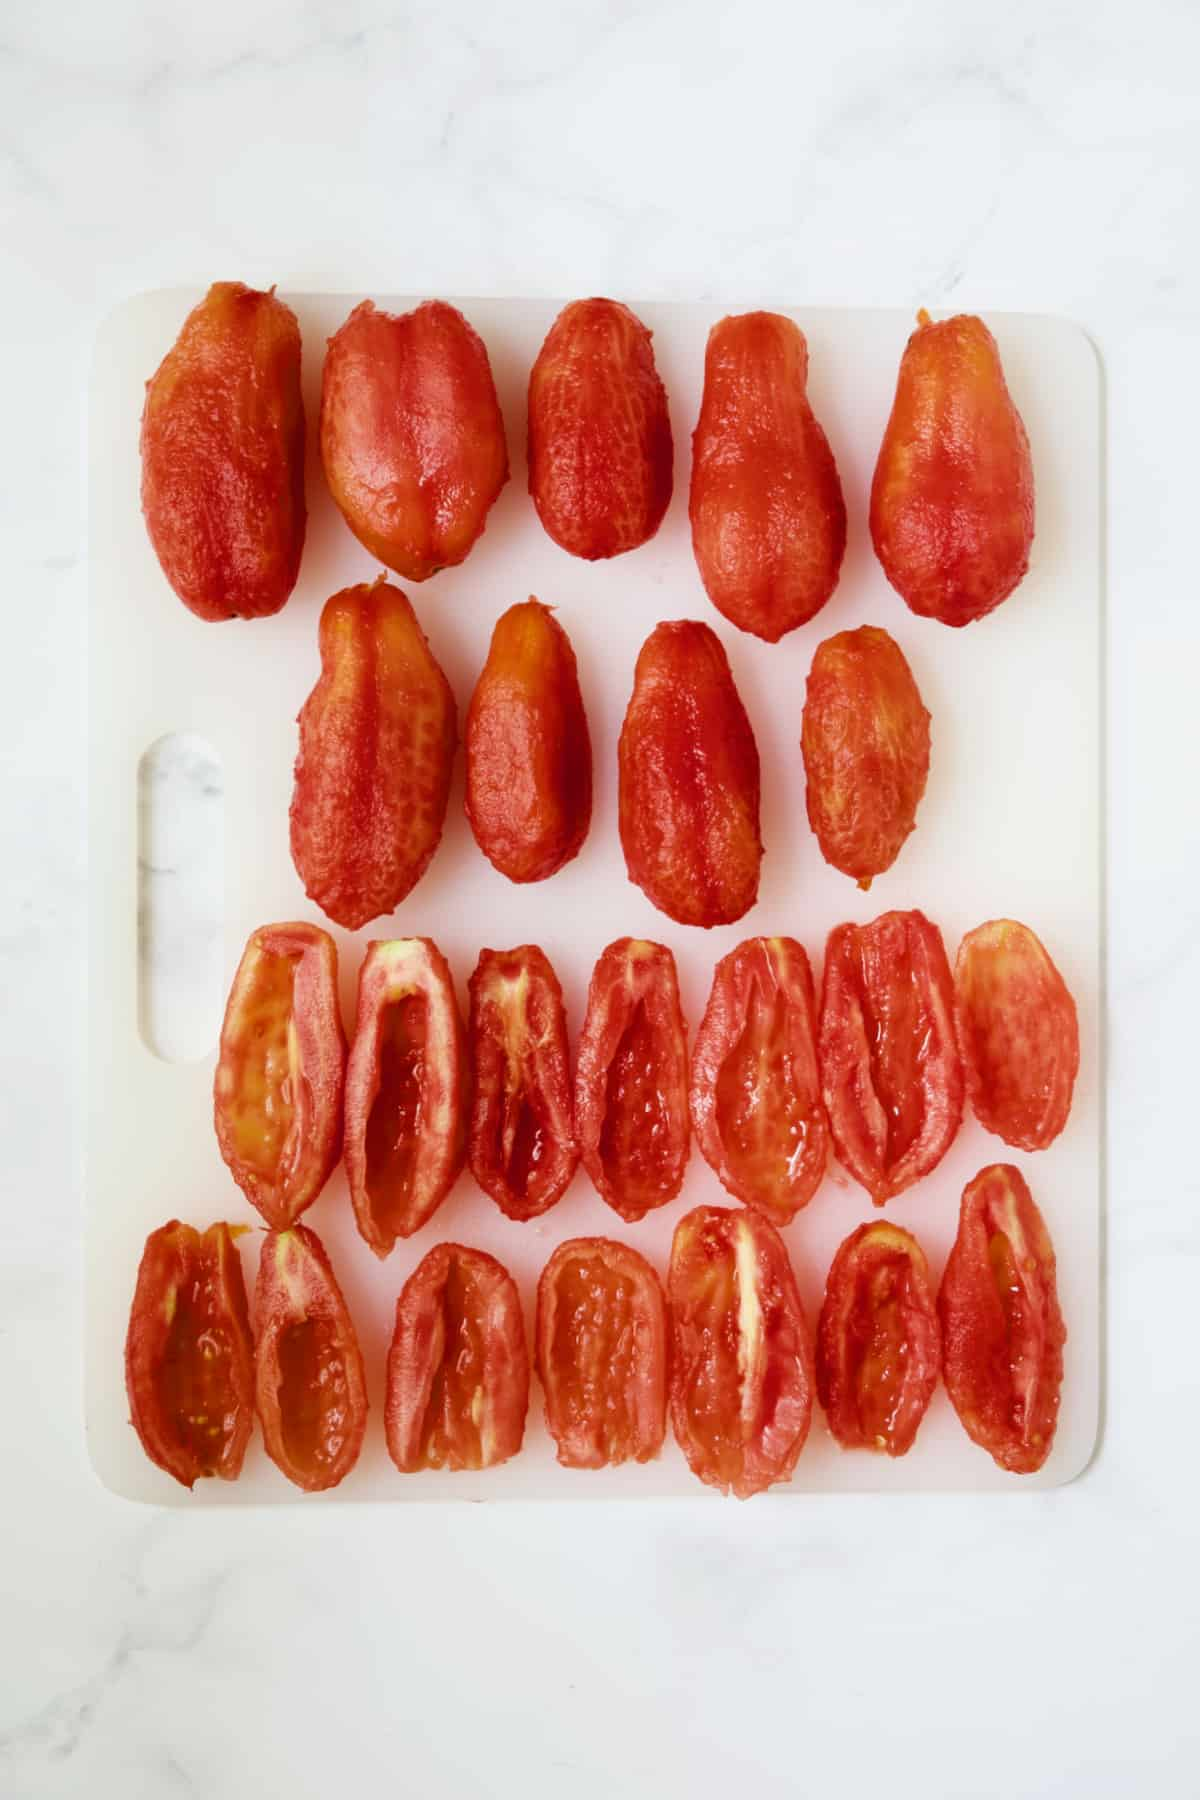 Nine whole skinned tomatoes and 14 peeled, halved and seeded tomatoes on white cutting board.